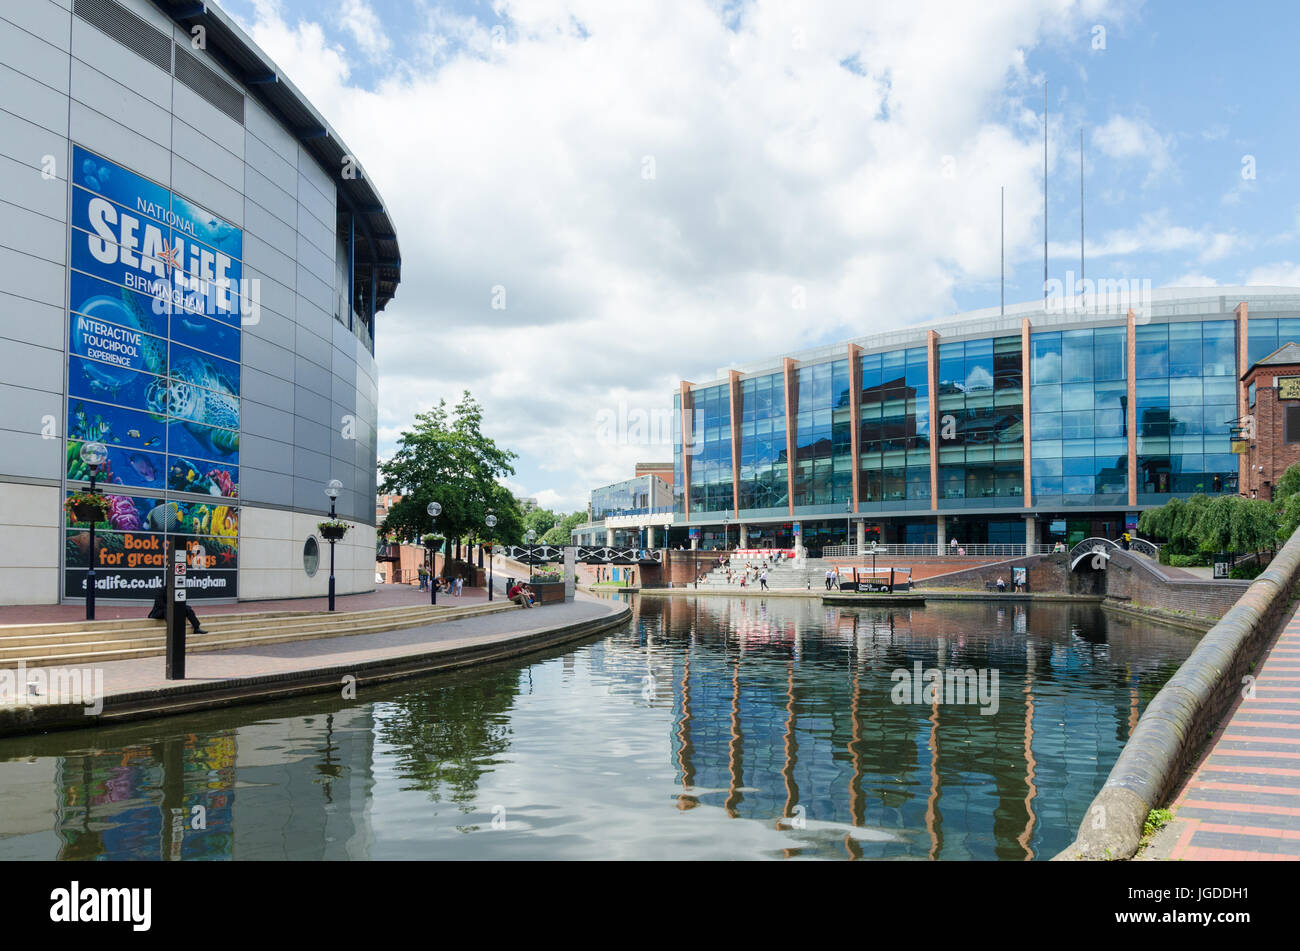 The Sea Life Centre and Barclaycard Arena by the canal running through Birmingham at Brindley Place - Stock Image